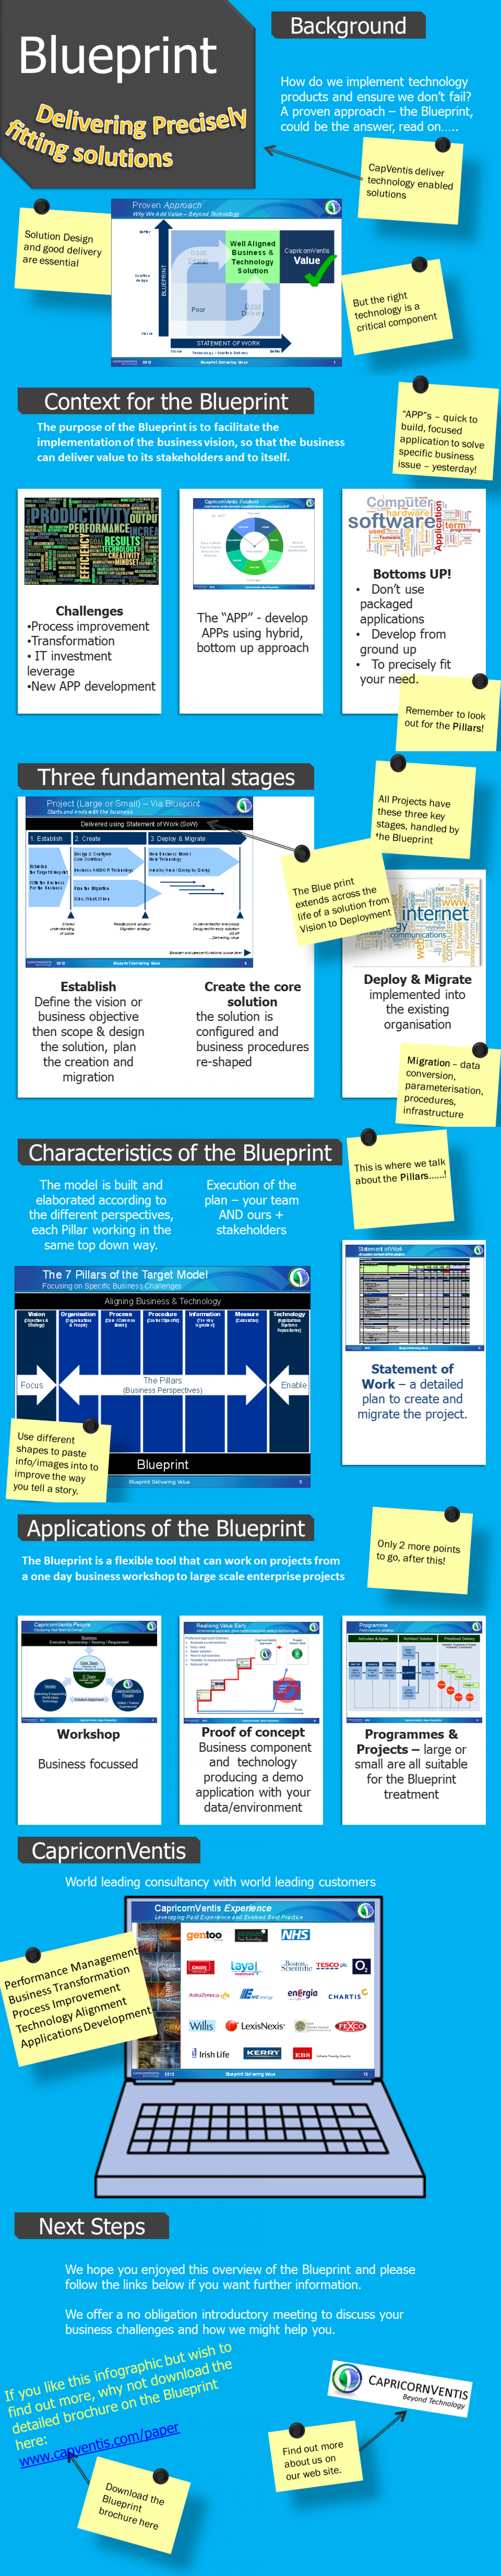 Blueprint Approach Infographic